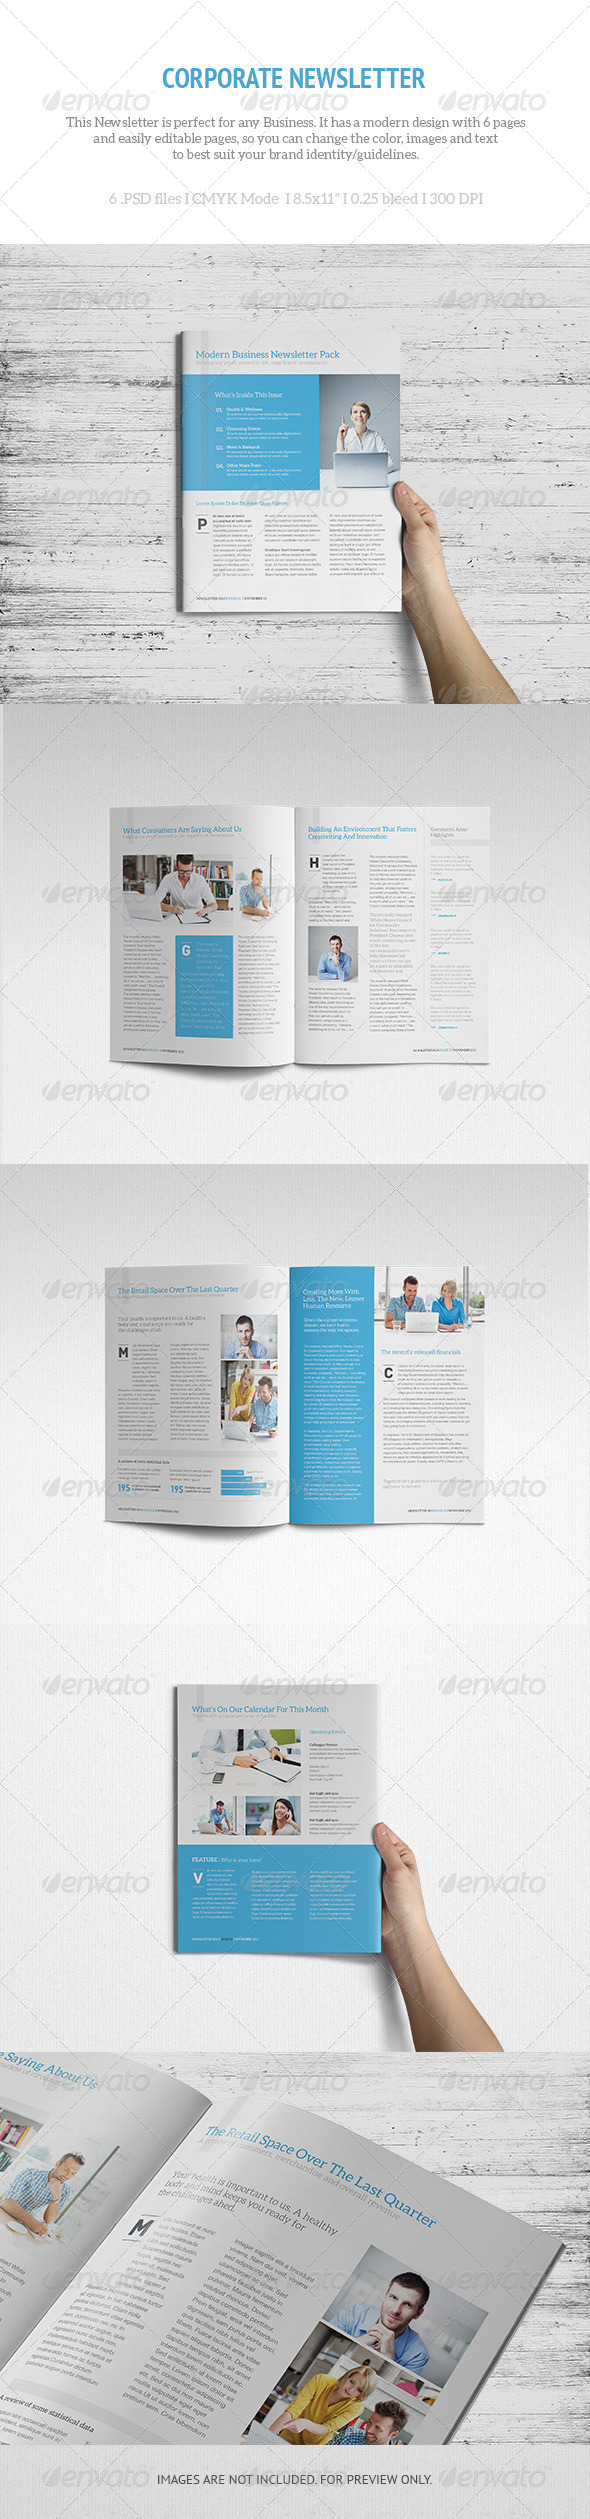 LETR Corporate Newsletter - Newsletters Print Templates